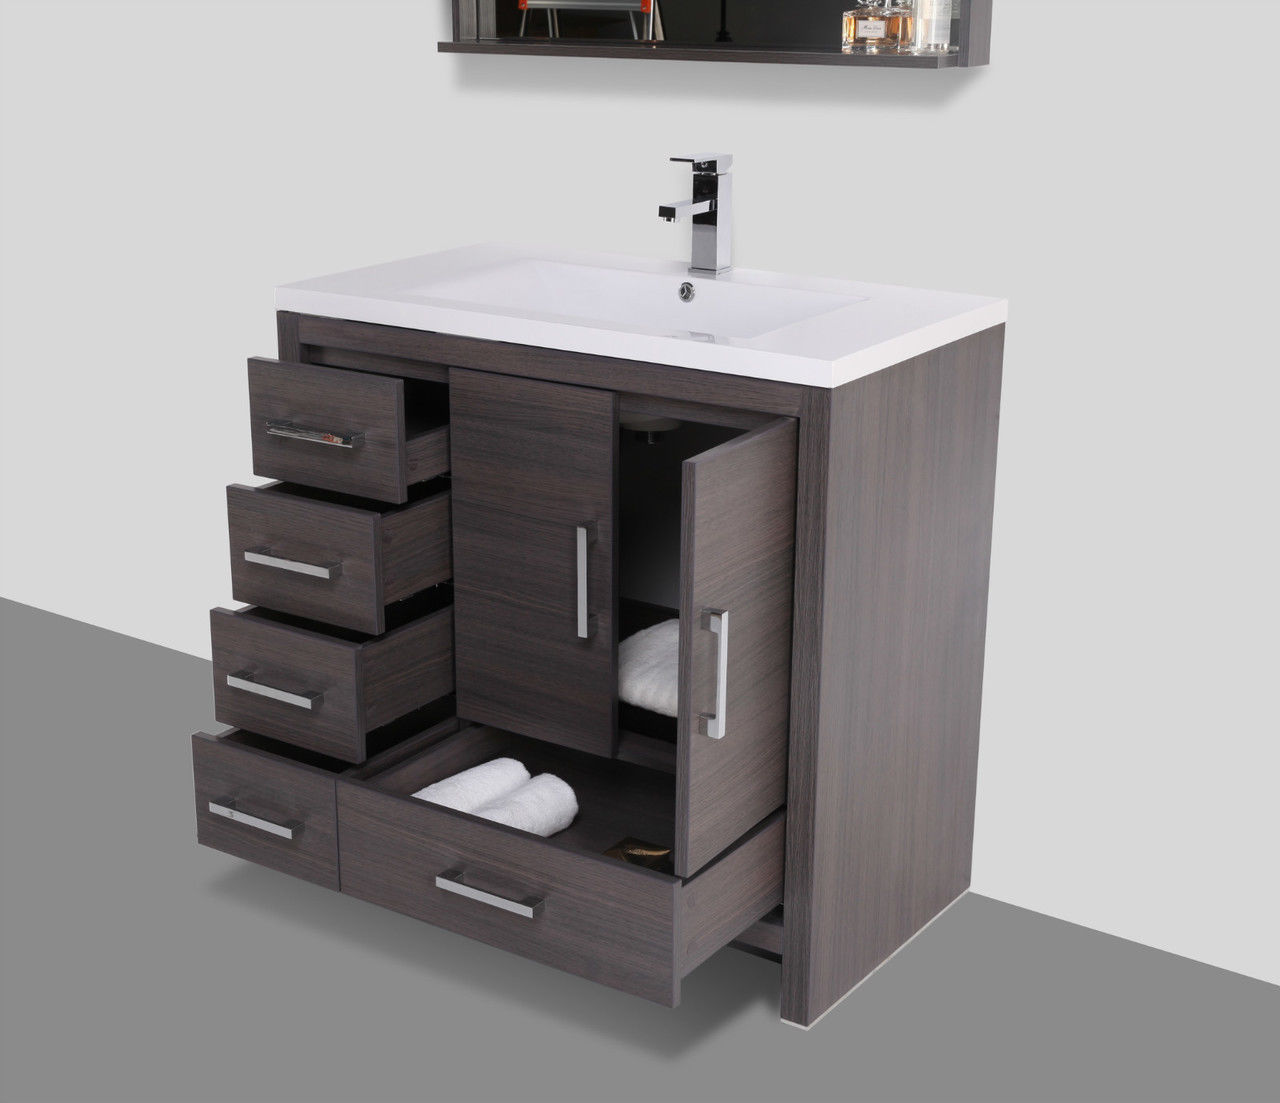 Moreno 36 gray oak modern bathroom vanity w acrylic sink - Bathroom vanity with drawers on left ...